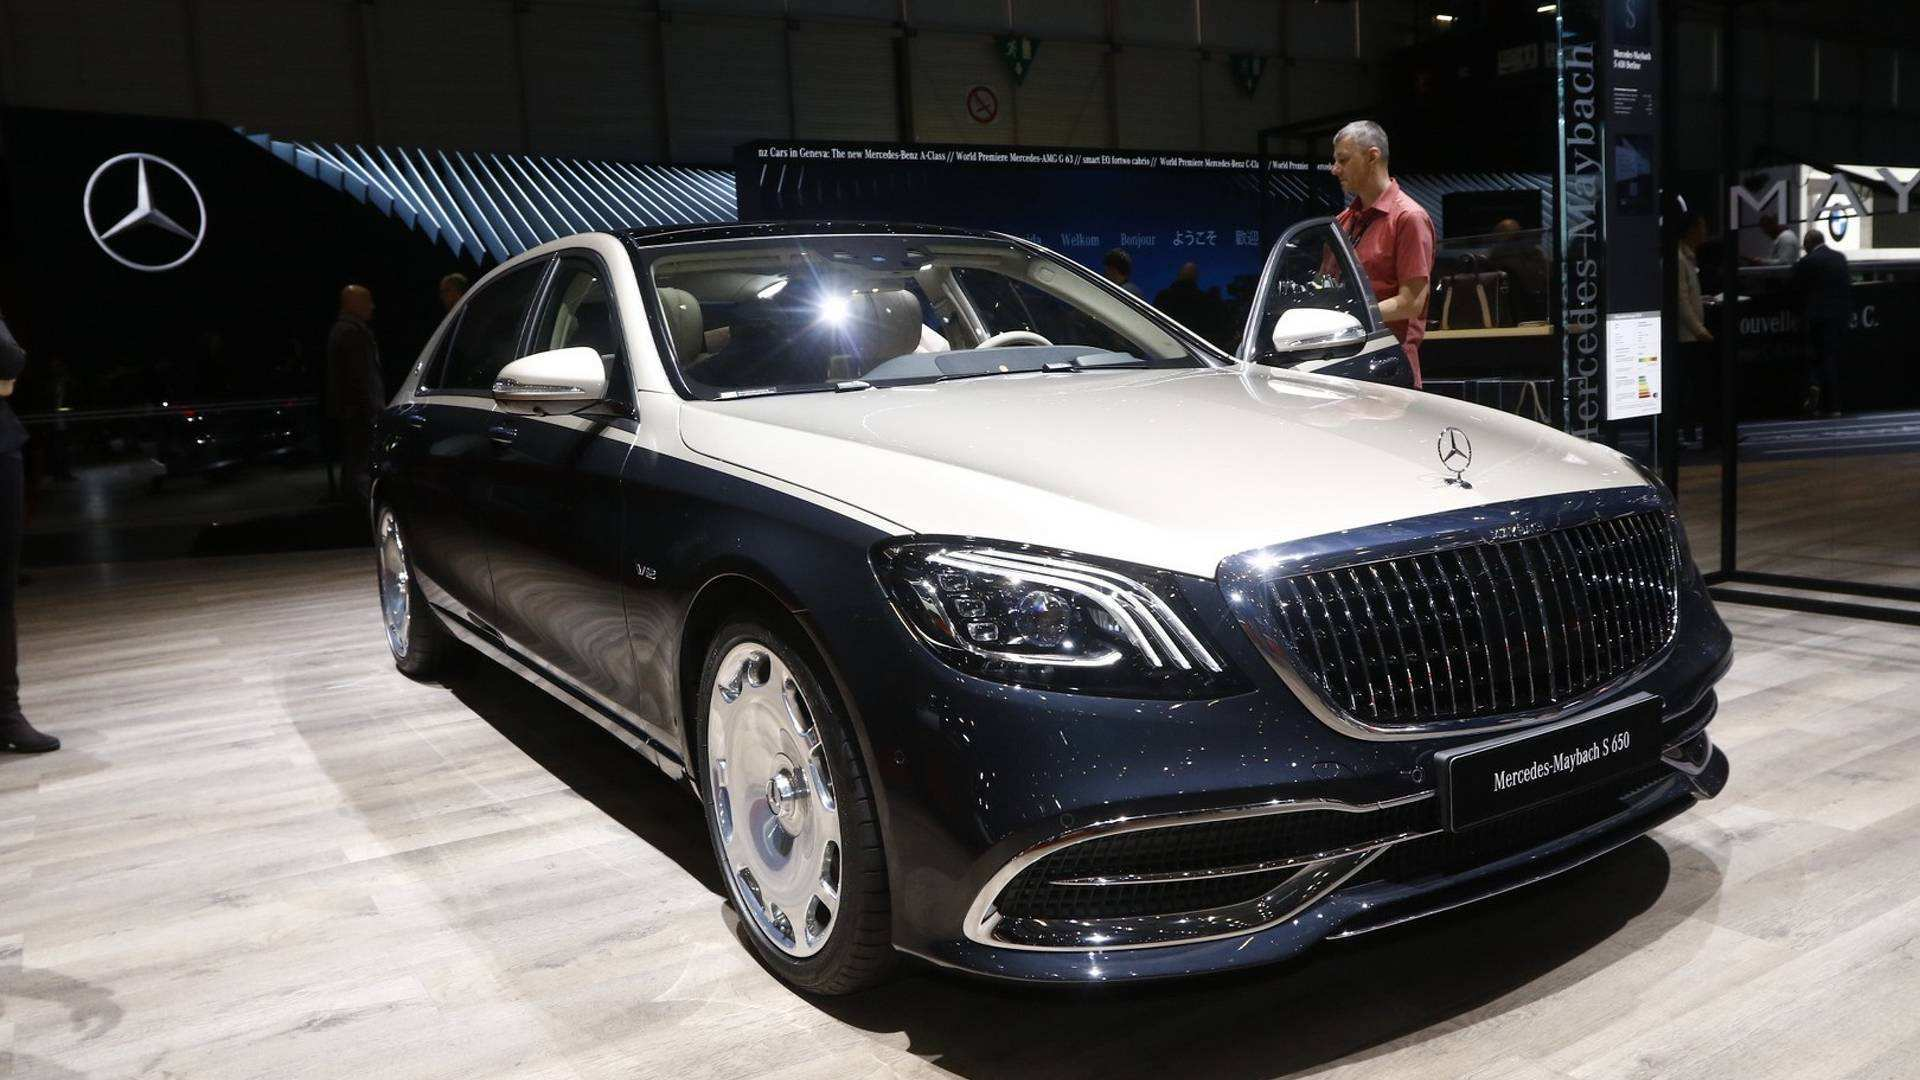 40 New Mercedes S650 Maybach 2019 Exterior and Interior by Mercedes S650 Maybach 2019